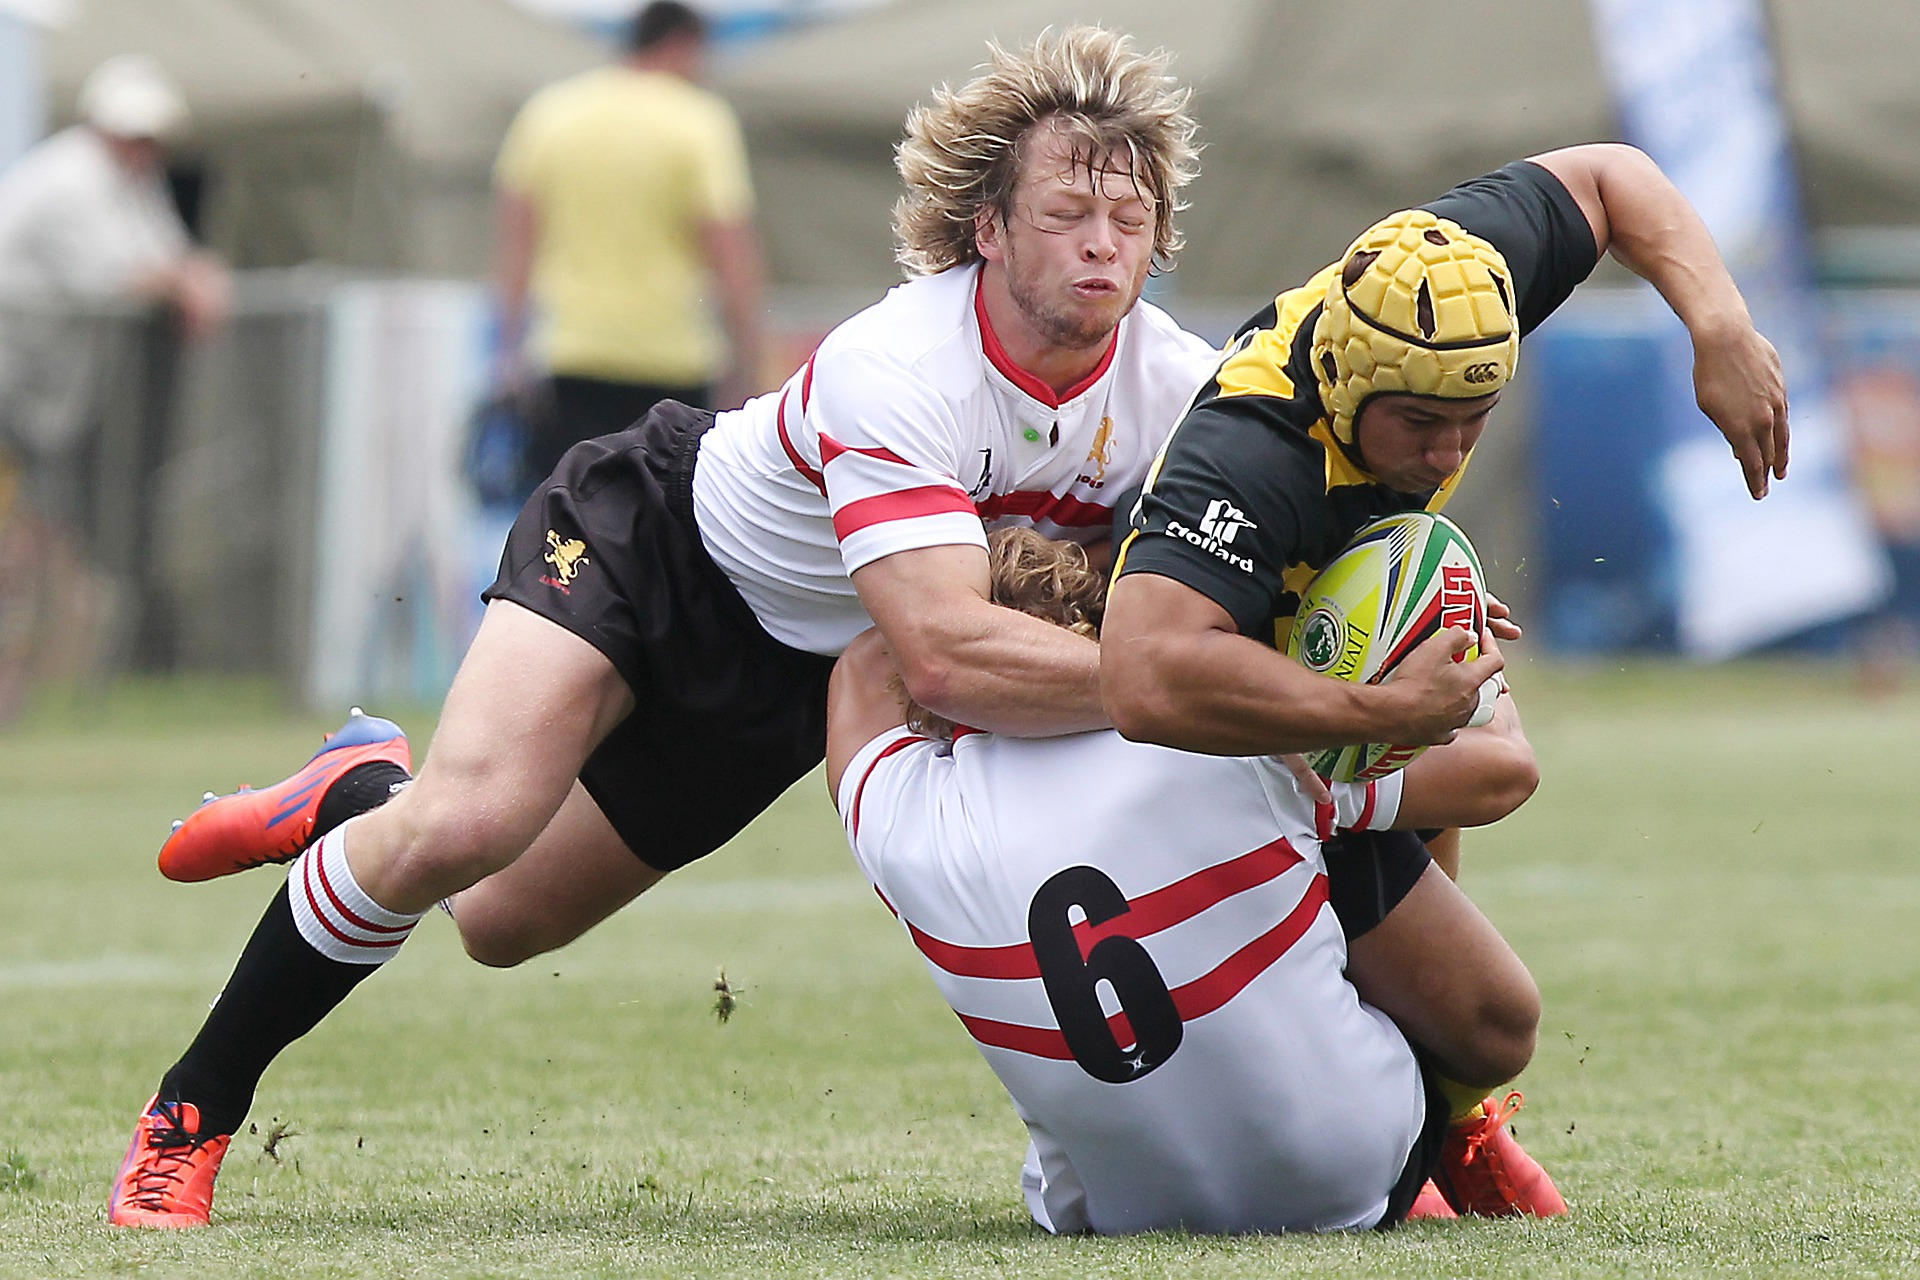 Two rugby players in white tackle an opposing player on the field who wears a protective yellow helmet.